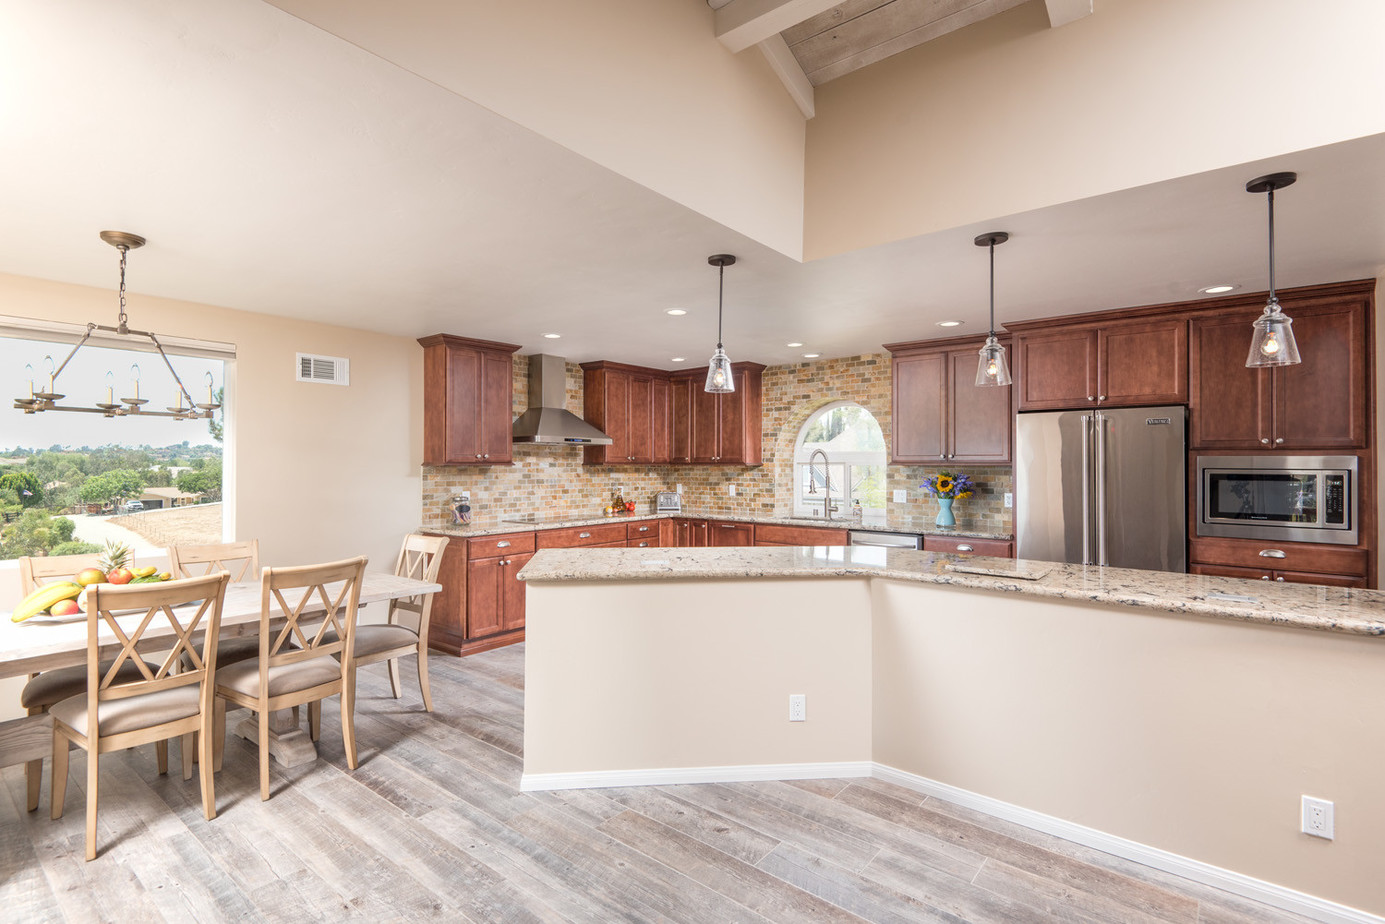 large L shaped kitchen with long bar height countertop